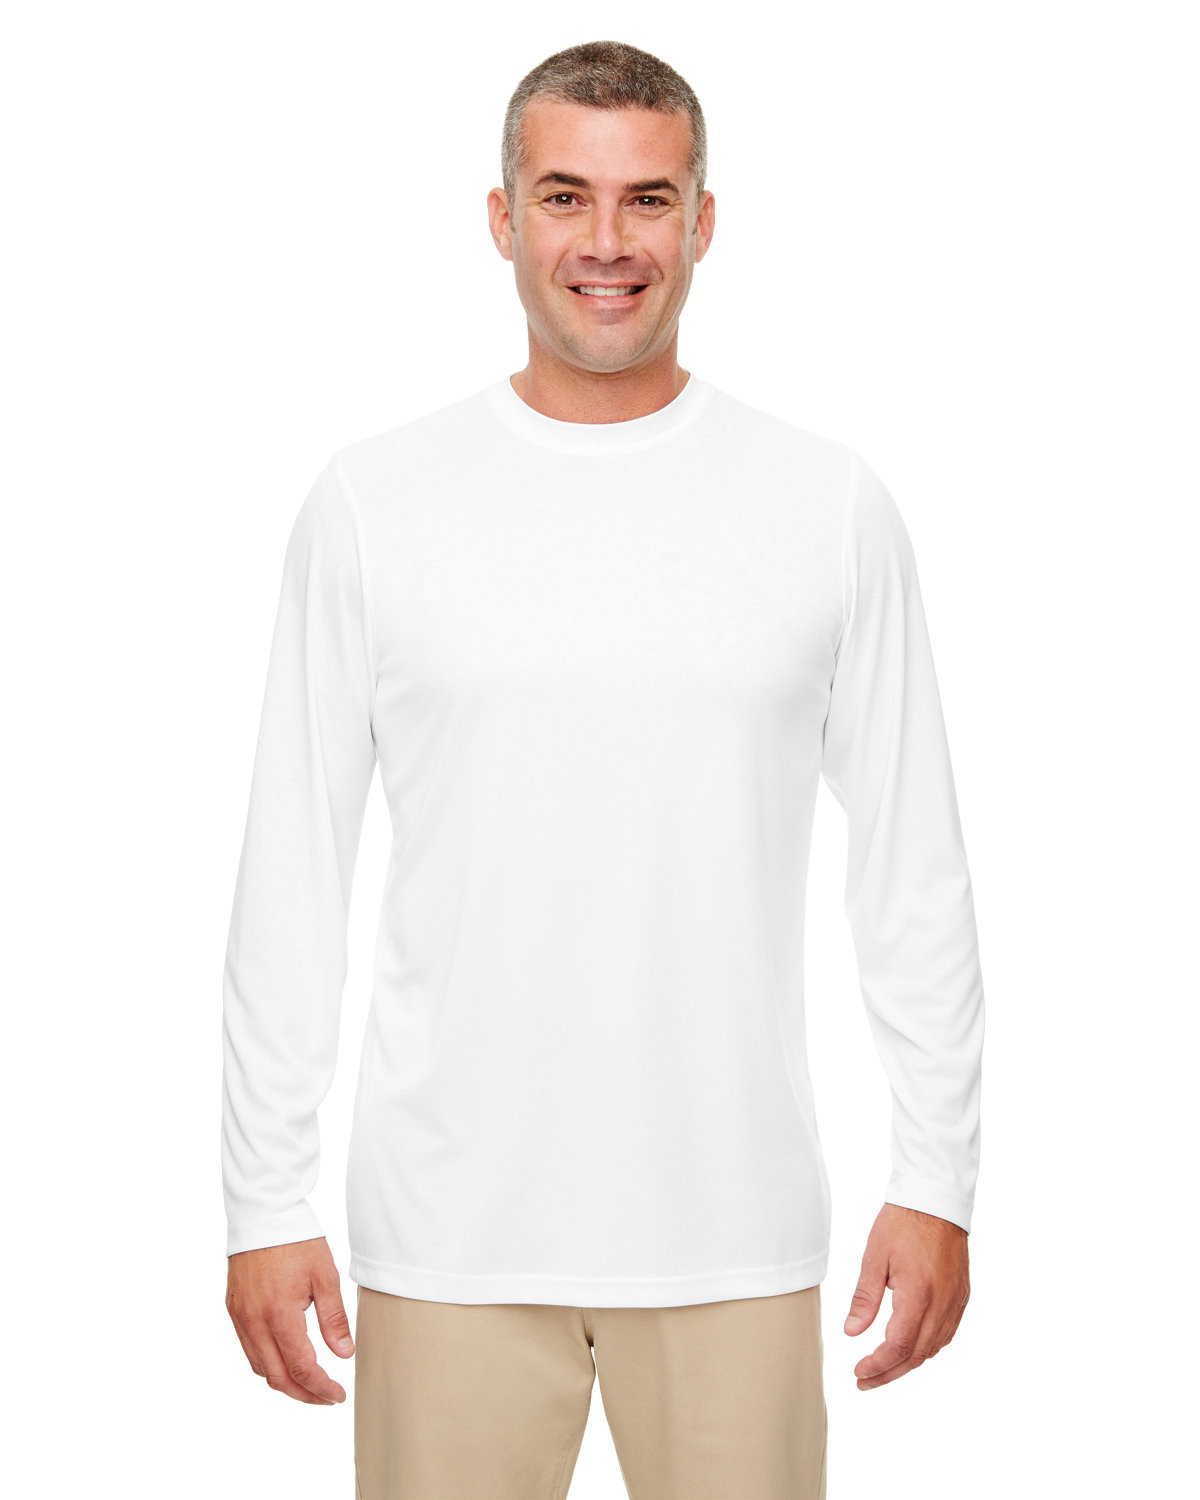 UltraClub Men's Cool & Dry Performance Long-Sleeve Top WHITE